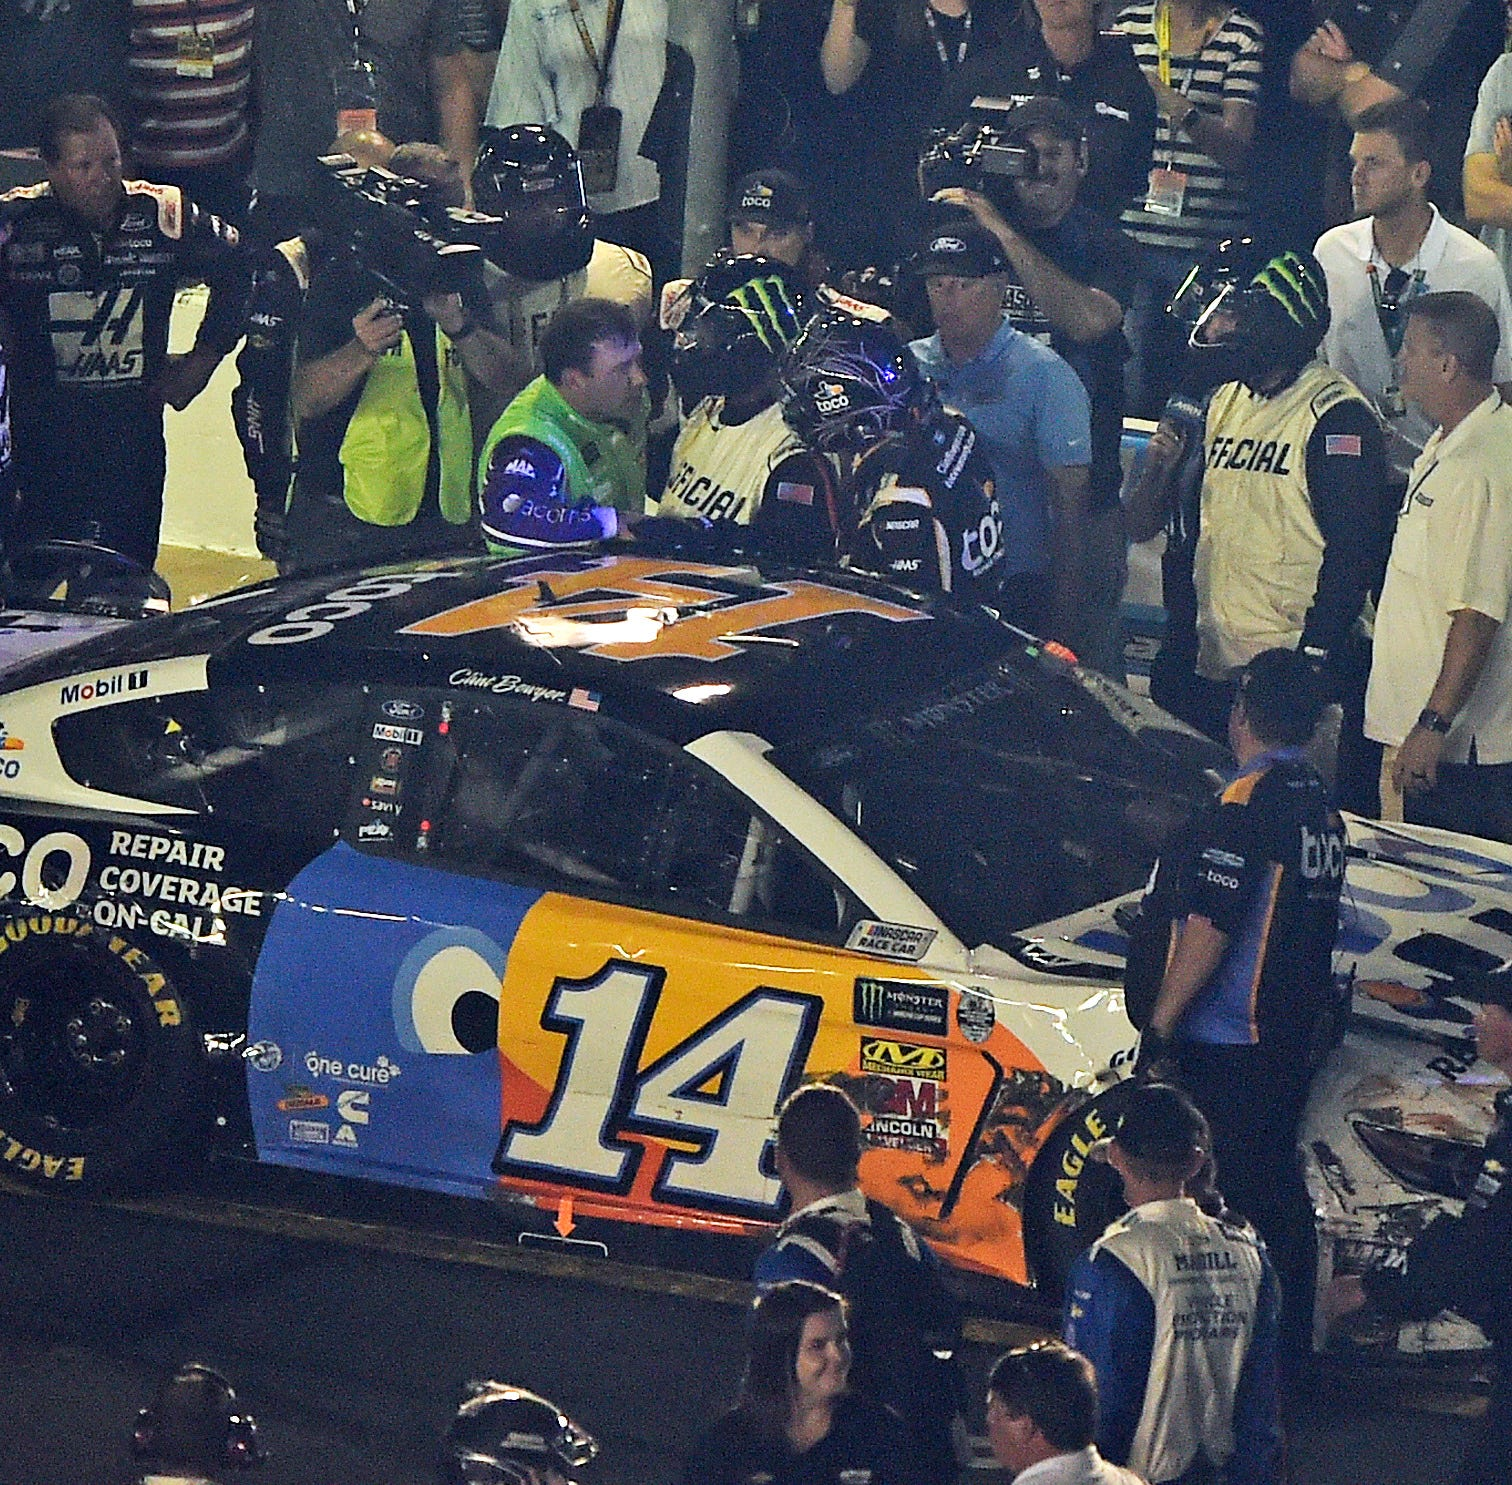 A NASCAR official tries to get between drivers Ryan Newman, left, and Clint Bowyer, right, after the NASCAR All-Star Race at Charlotte Motor Speedway.